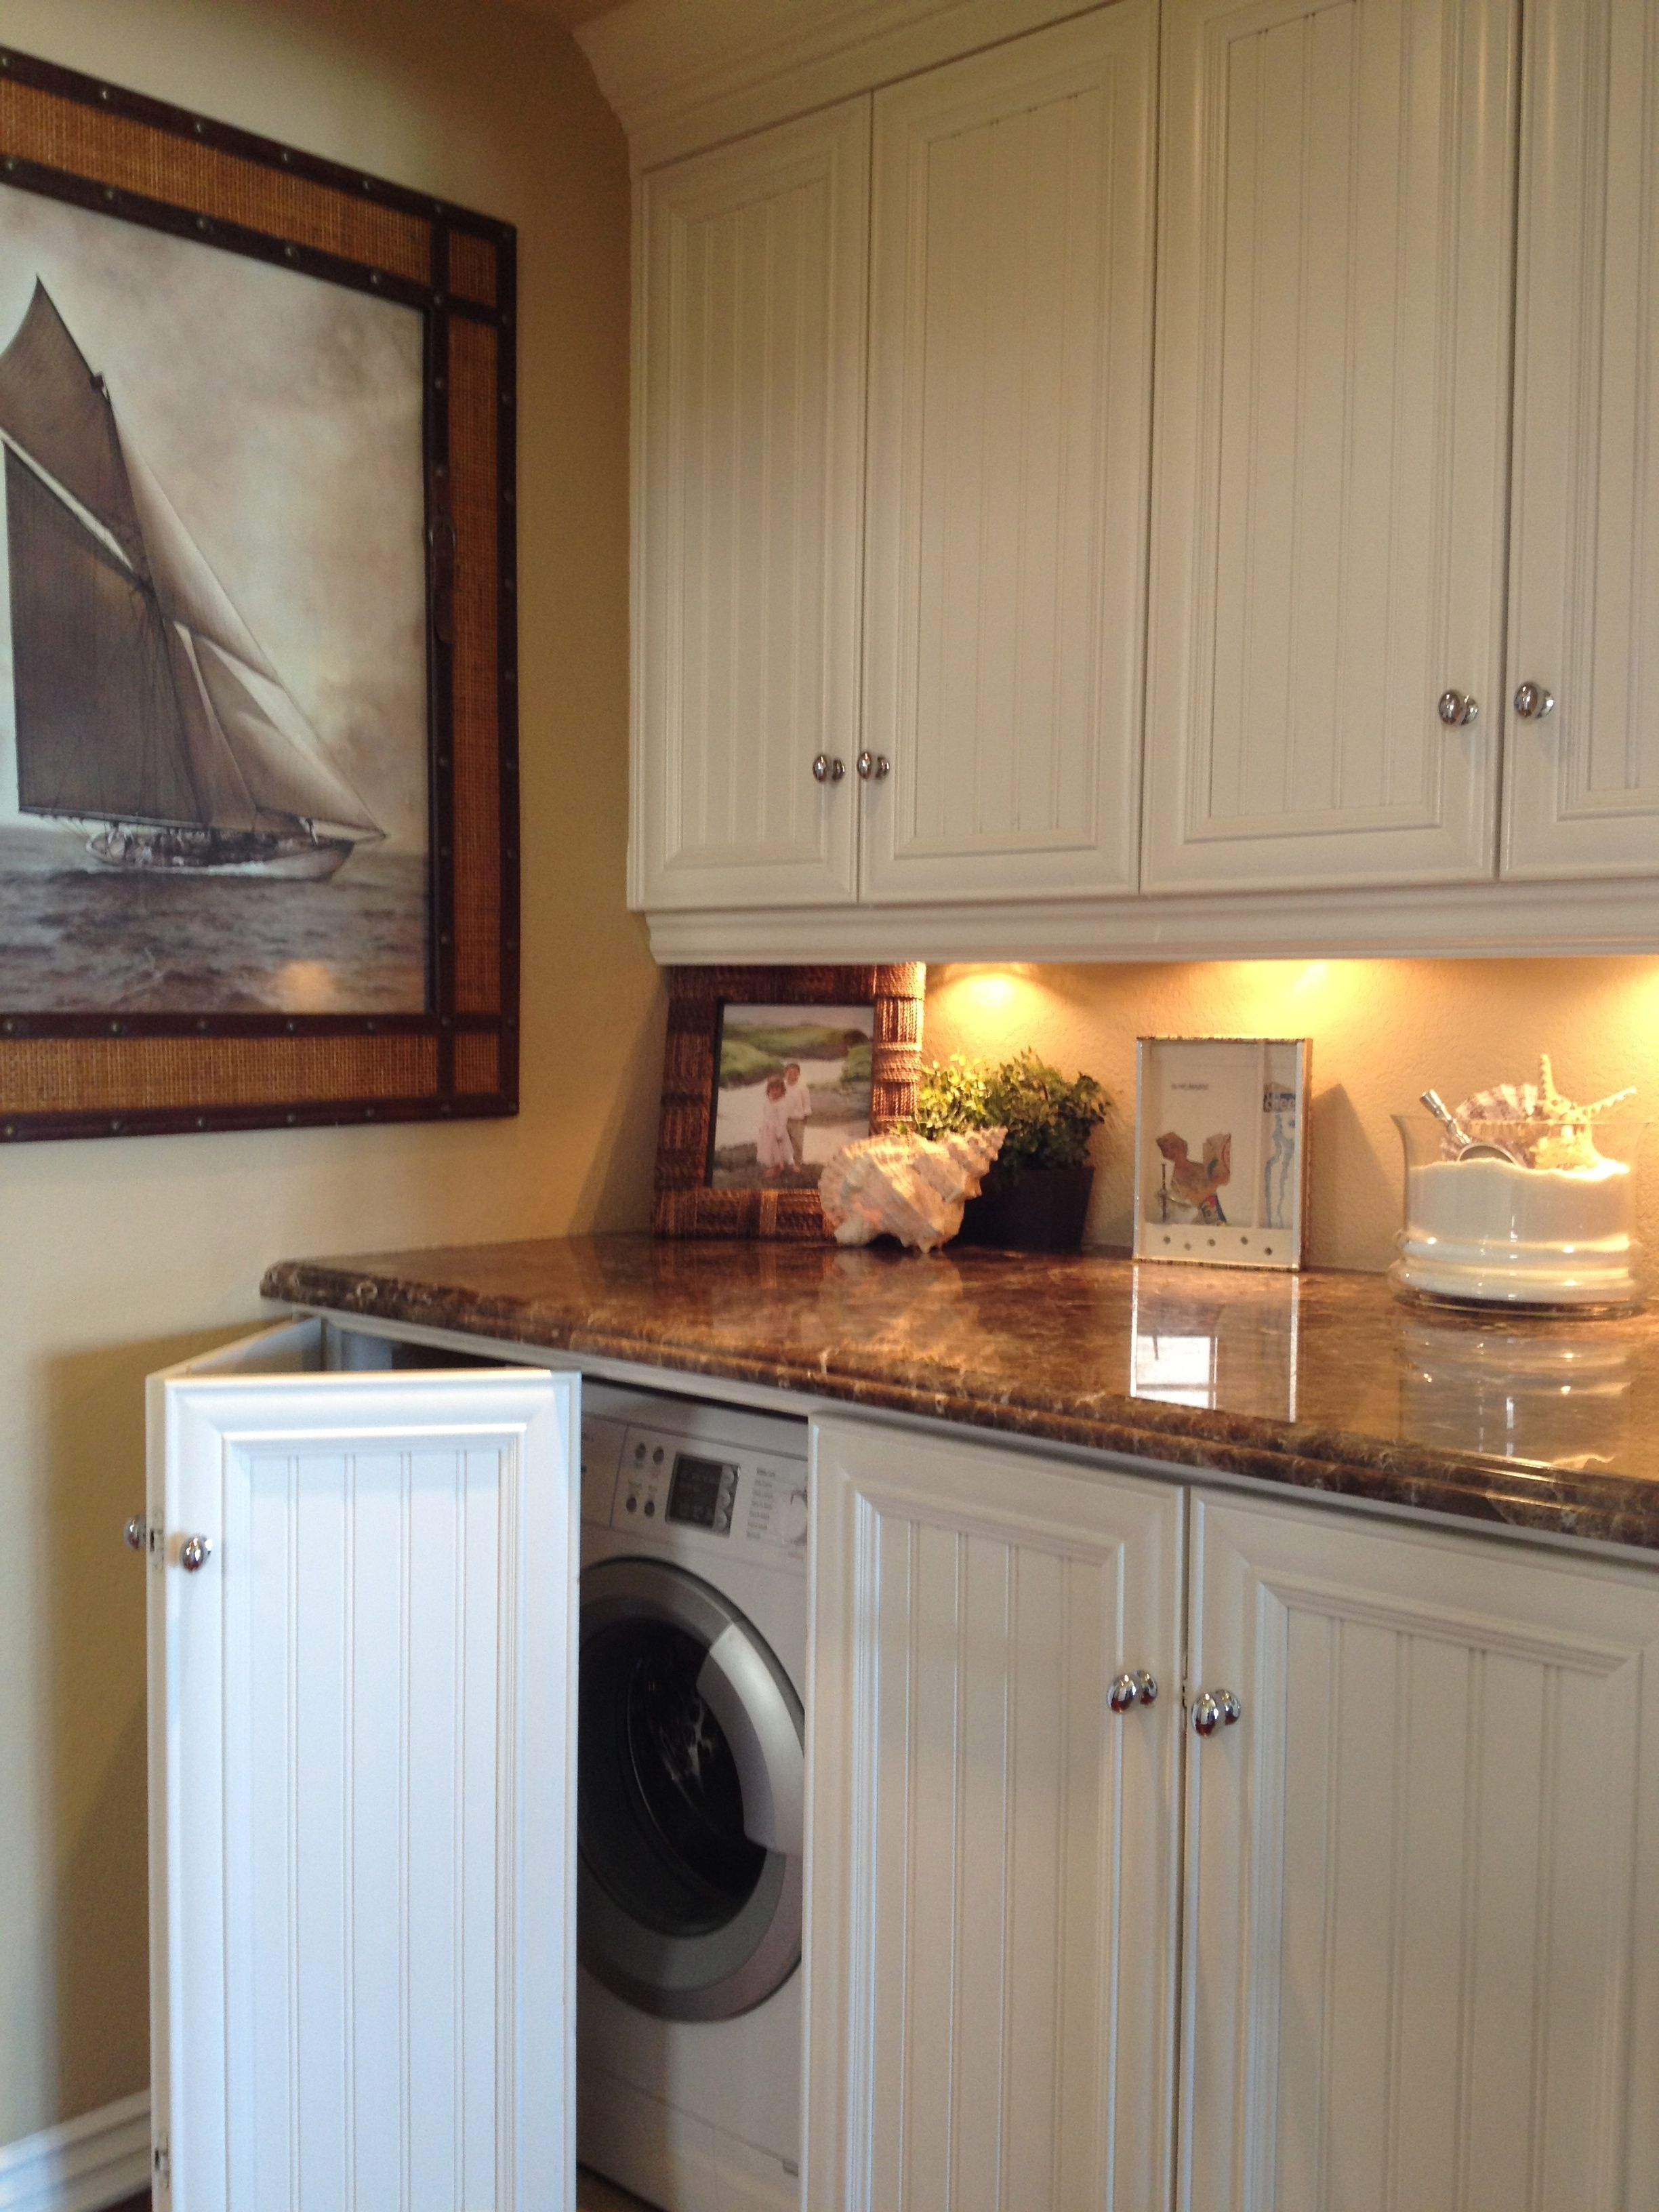 Kitchen Laundry Room Design: Lots Of Cupboard Space In The Kitchen That We Don't Really